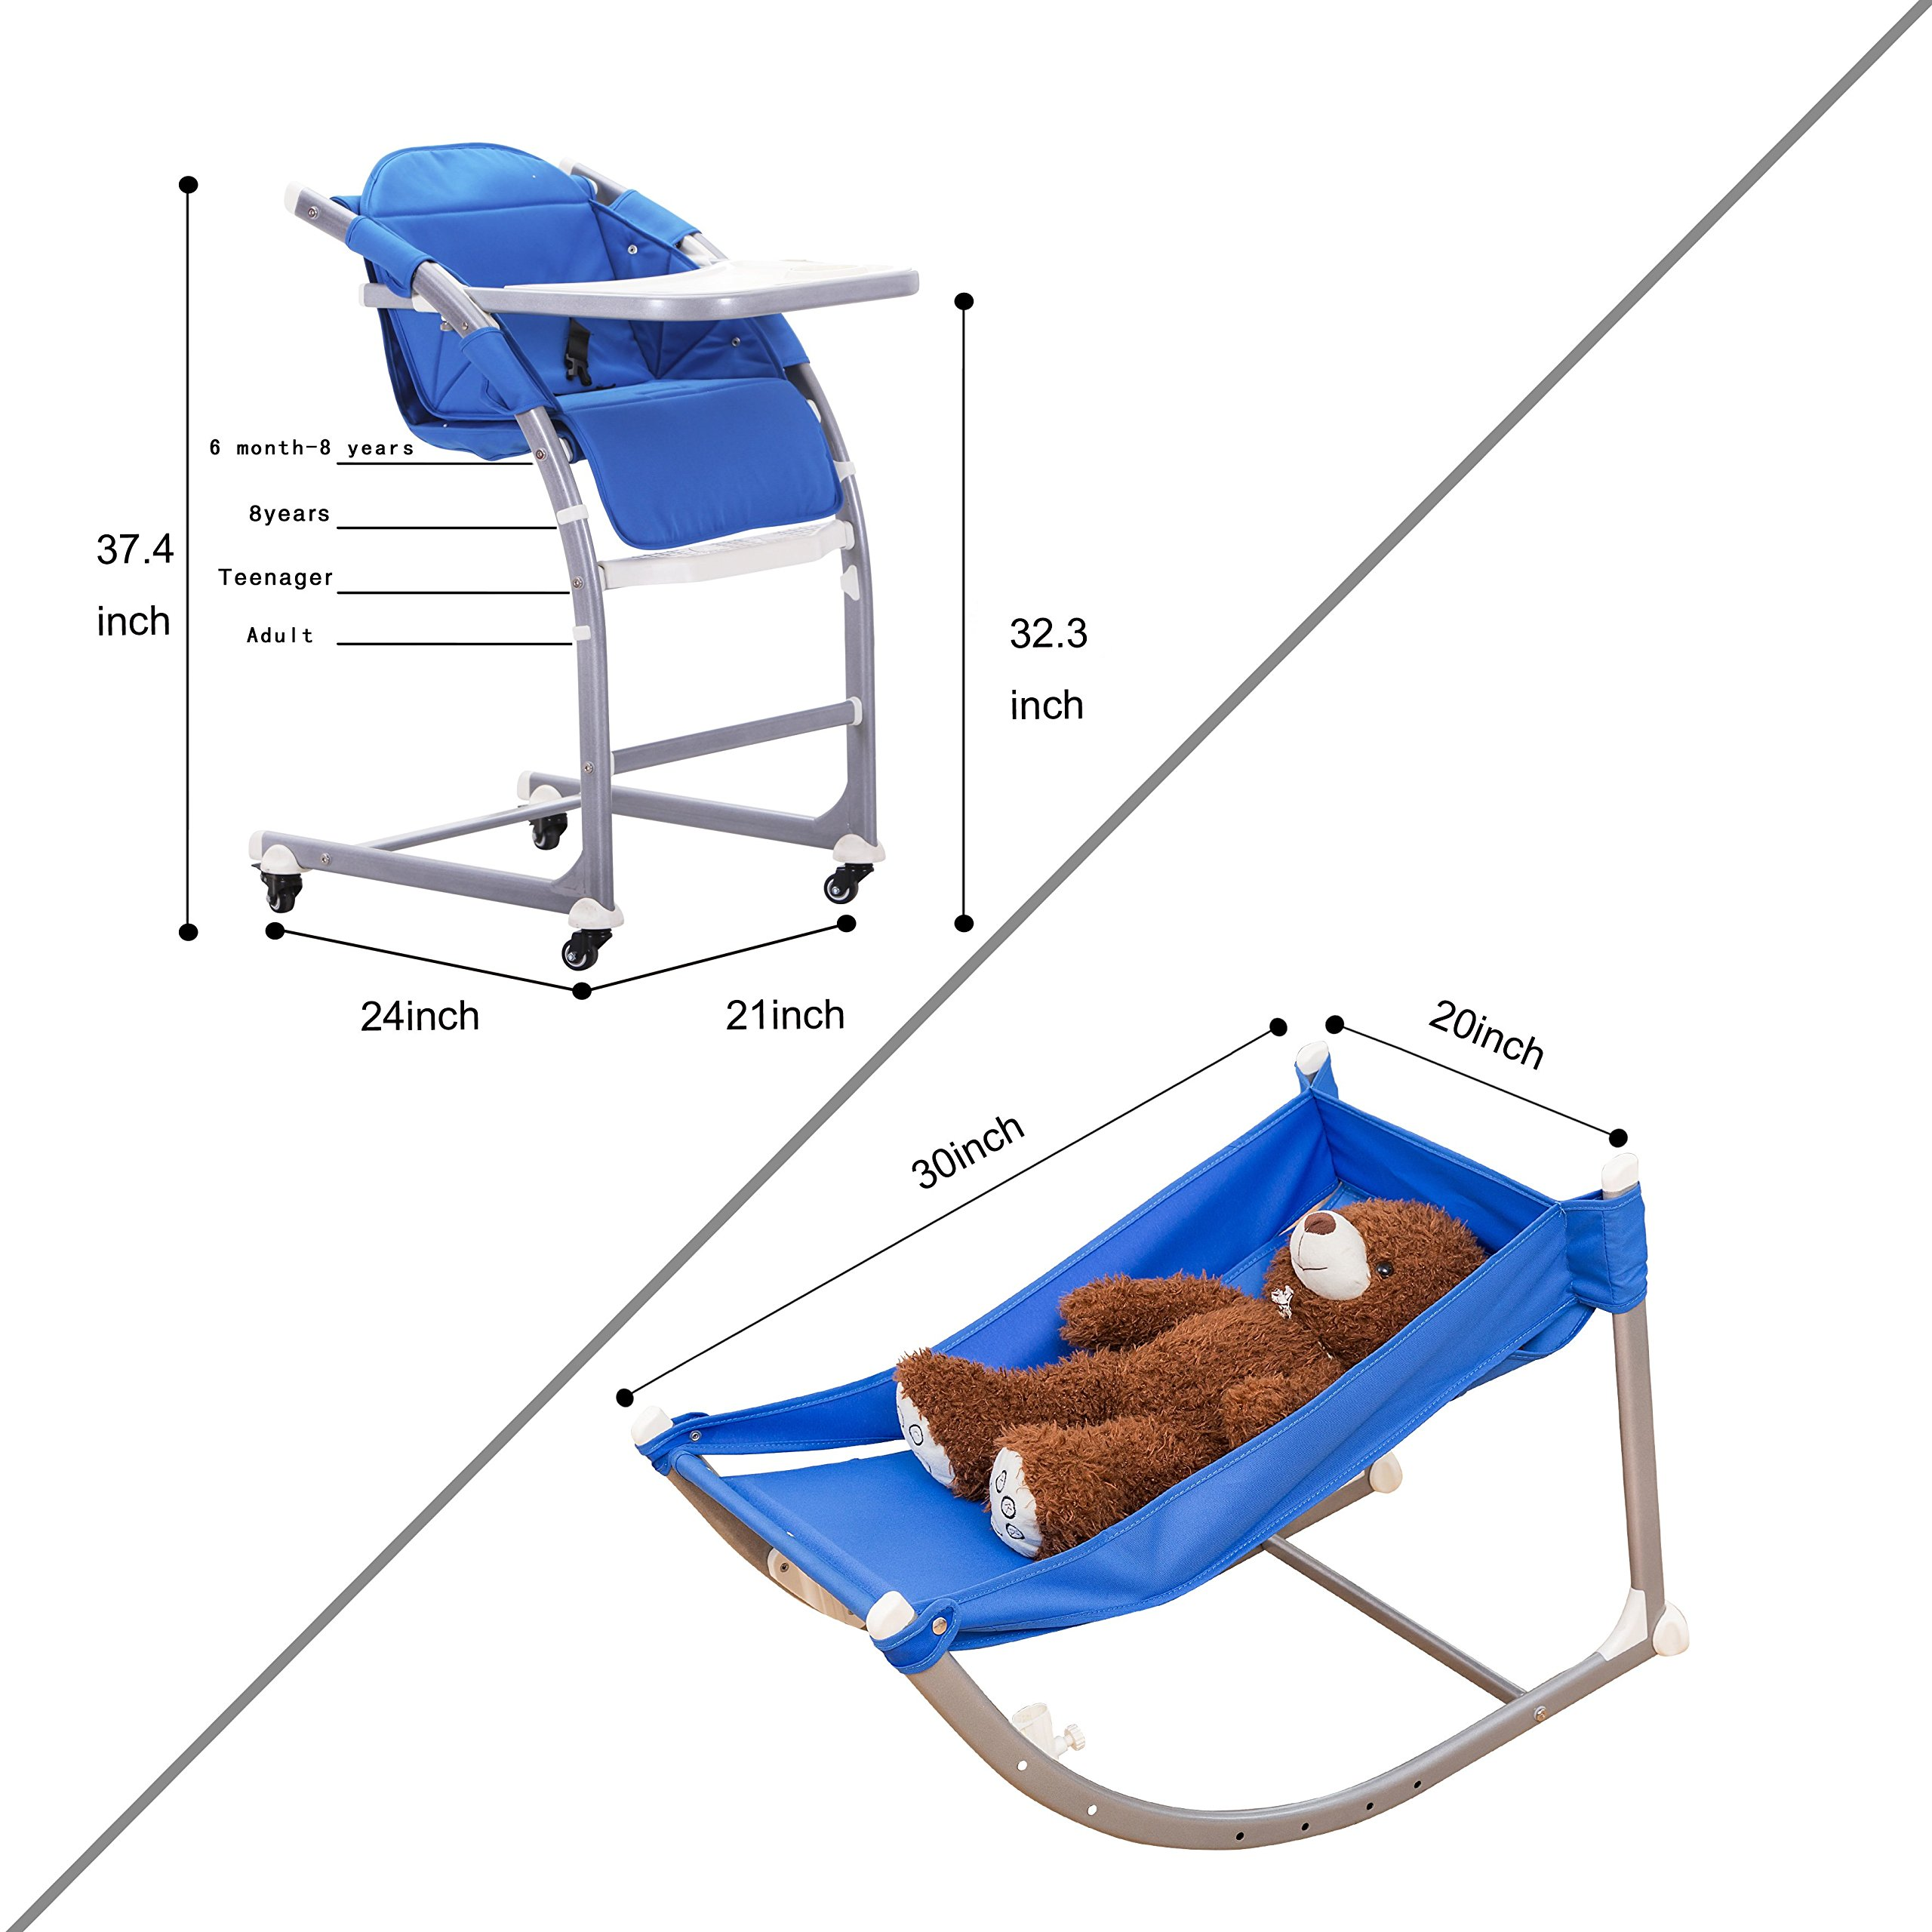 Color Blue Sdadi-Aluminum alloy adjustable high chair (Blue) Sdadi adjustable chair is a multistagecomfortable and sturdy seat that willhave a place in ...  sc 1 st  Chickadee Solutions & Sdadi Aluminumalloy Adjustable High Chair Rocker Youth Chair ...